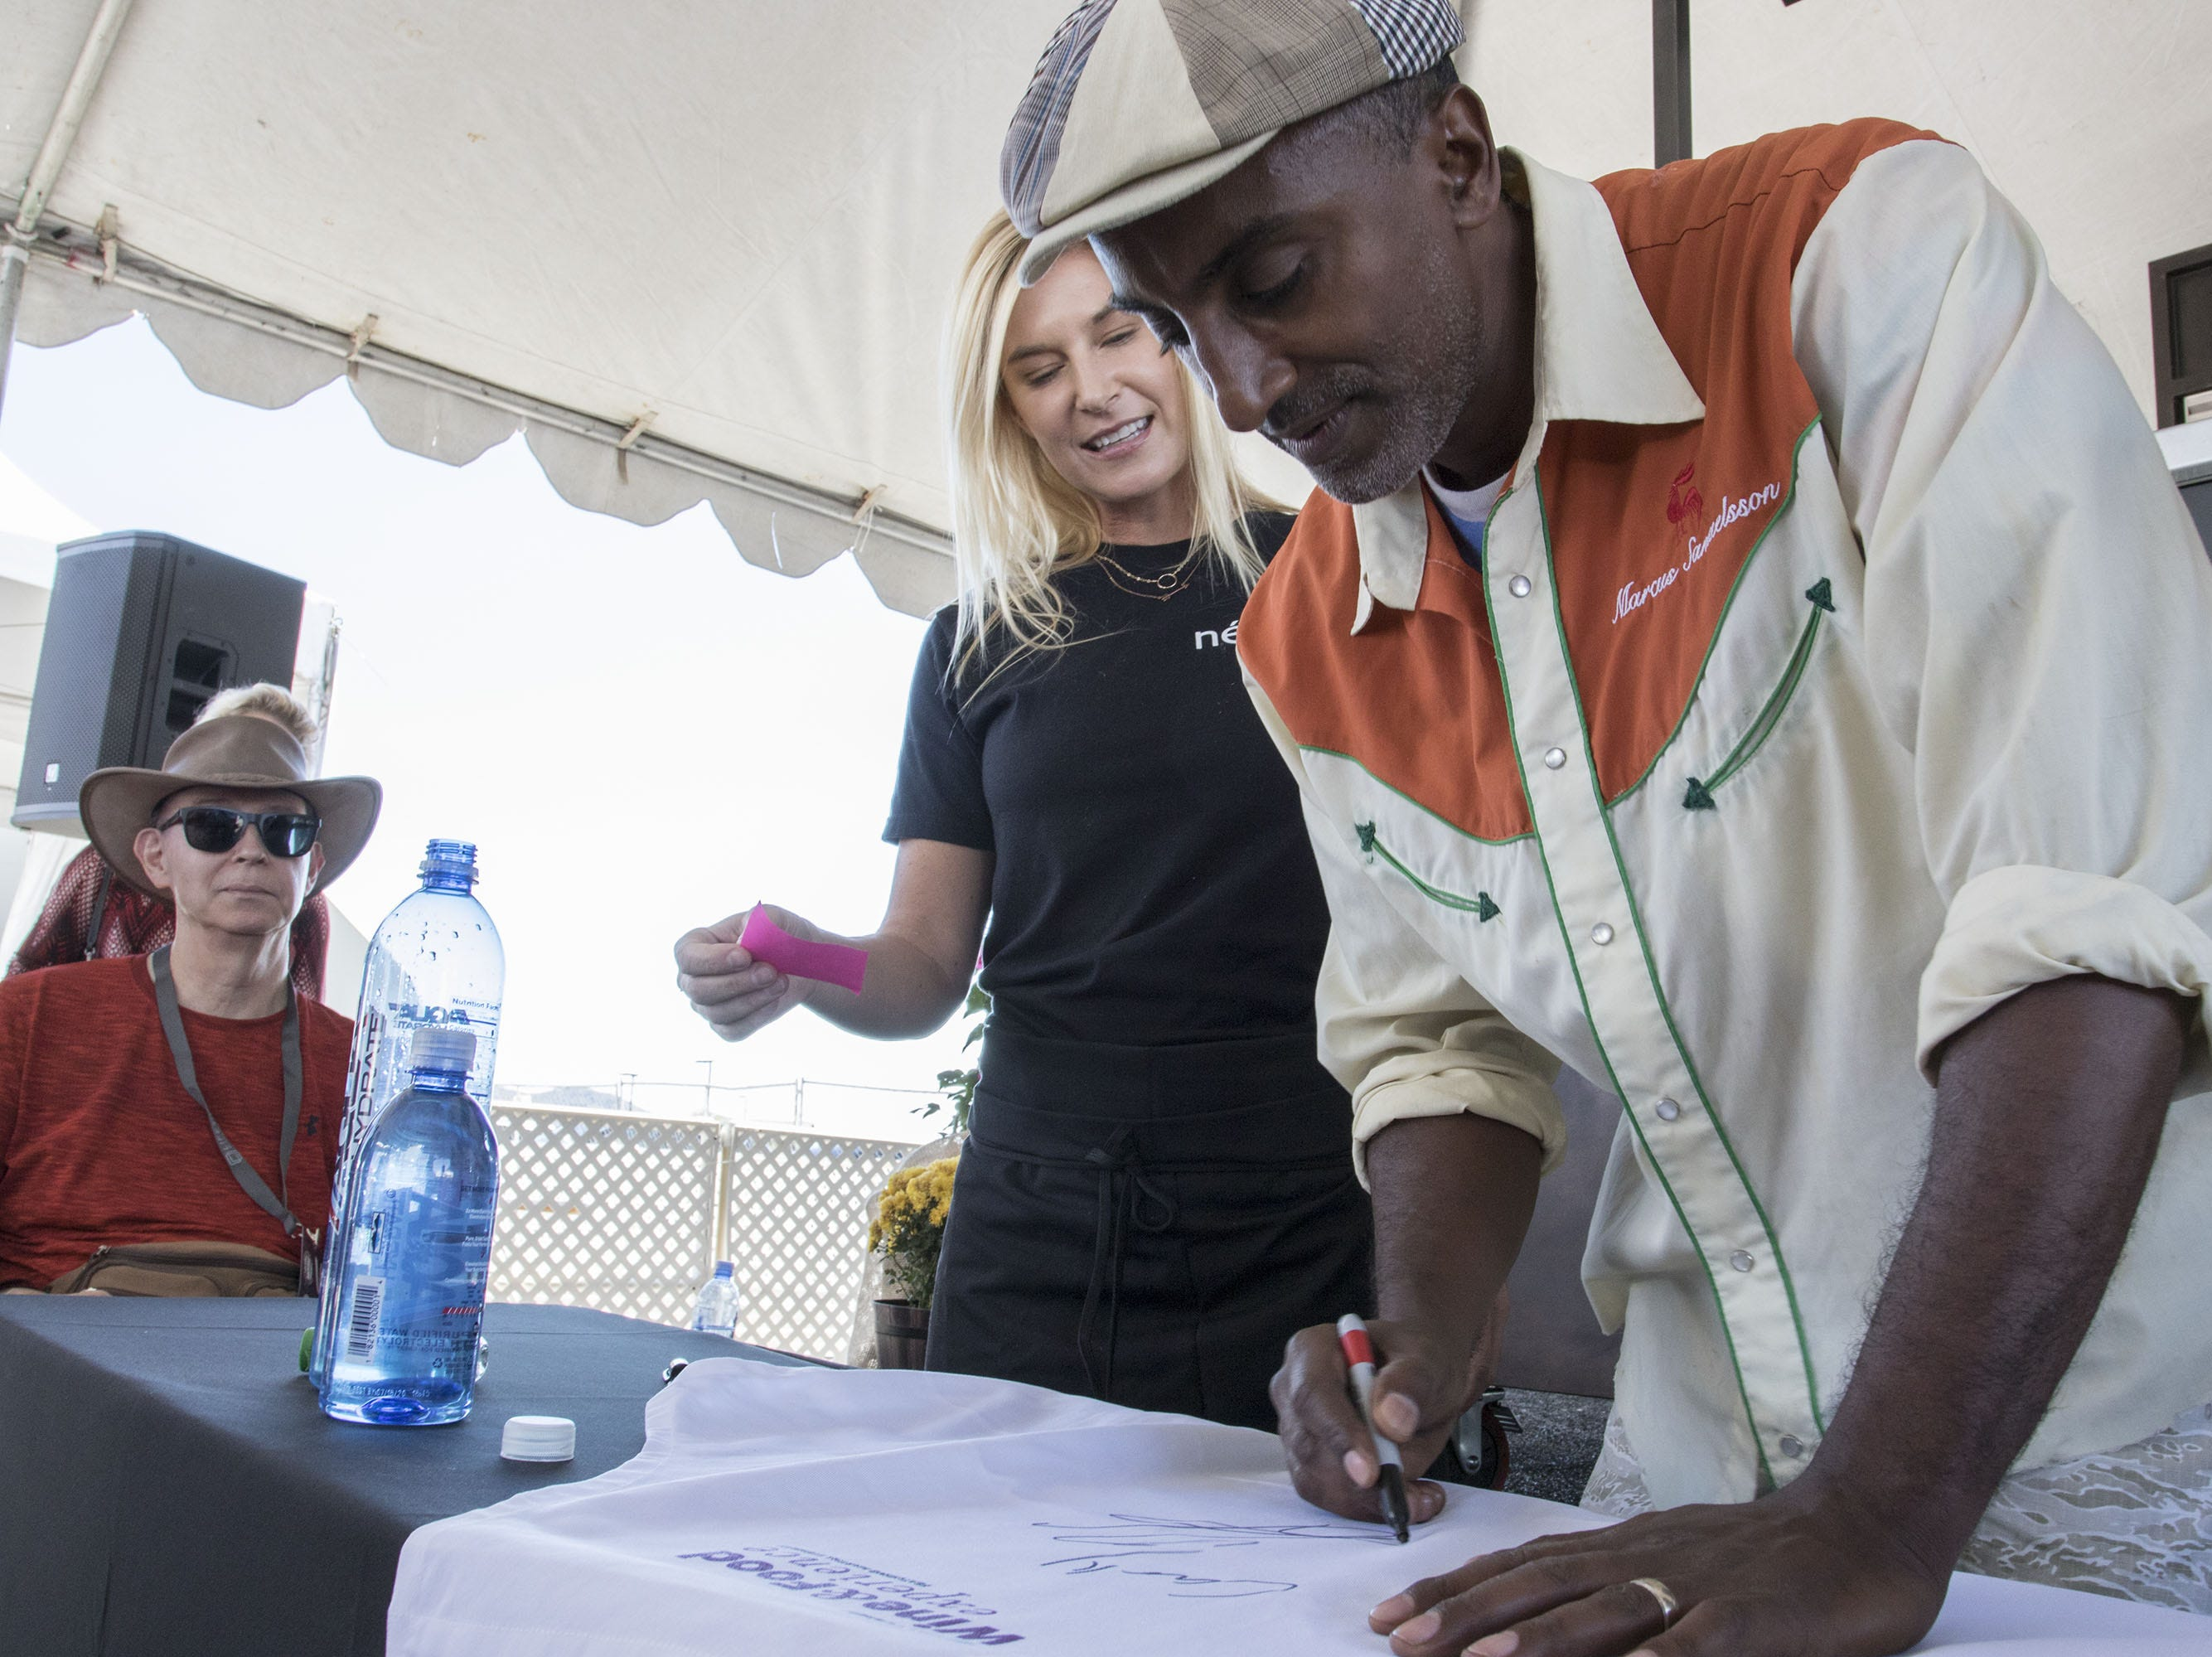 Chef Marcus Samuelsson signs an apron for a guest during the azcentral Wine & Food Experience at WestWorld of Scottsdale, Saturday, Nov. 3, 2018.